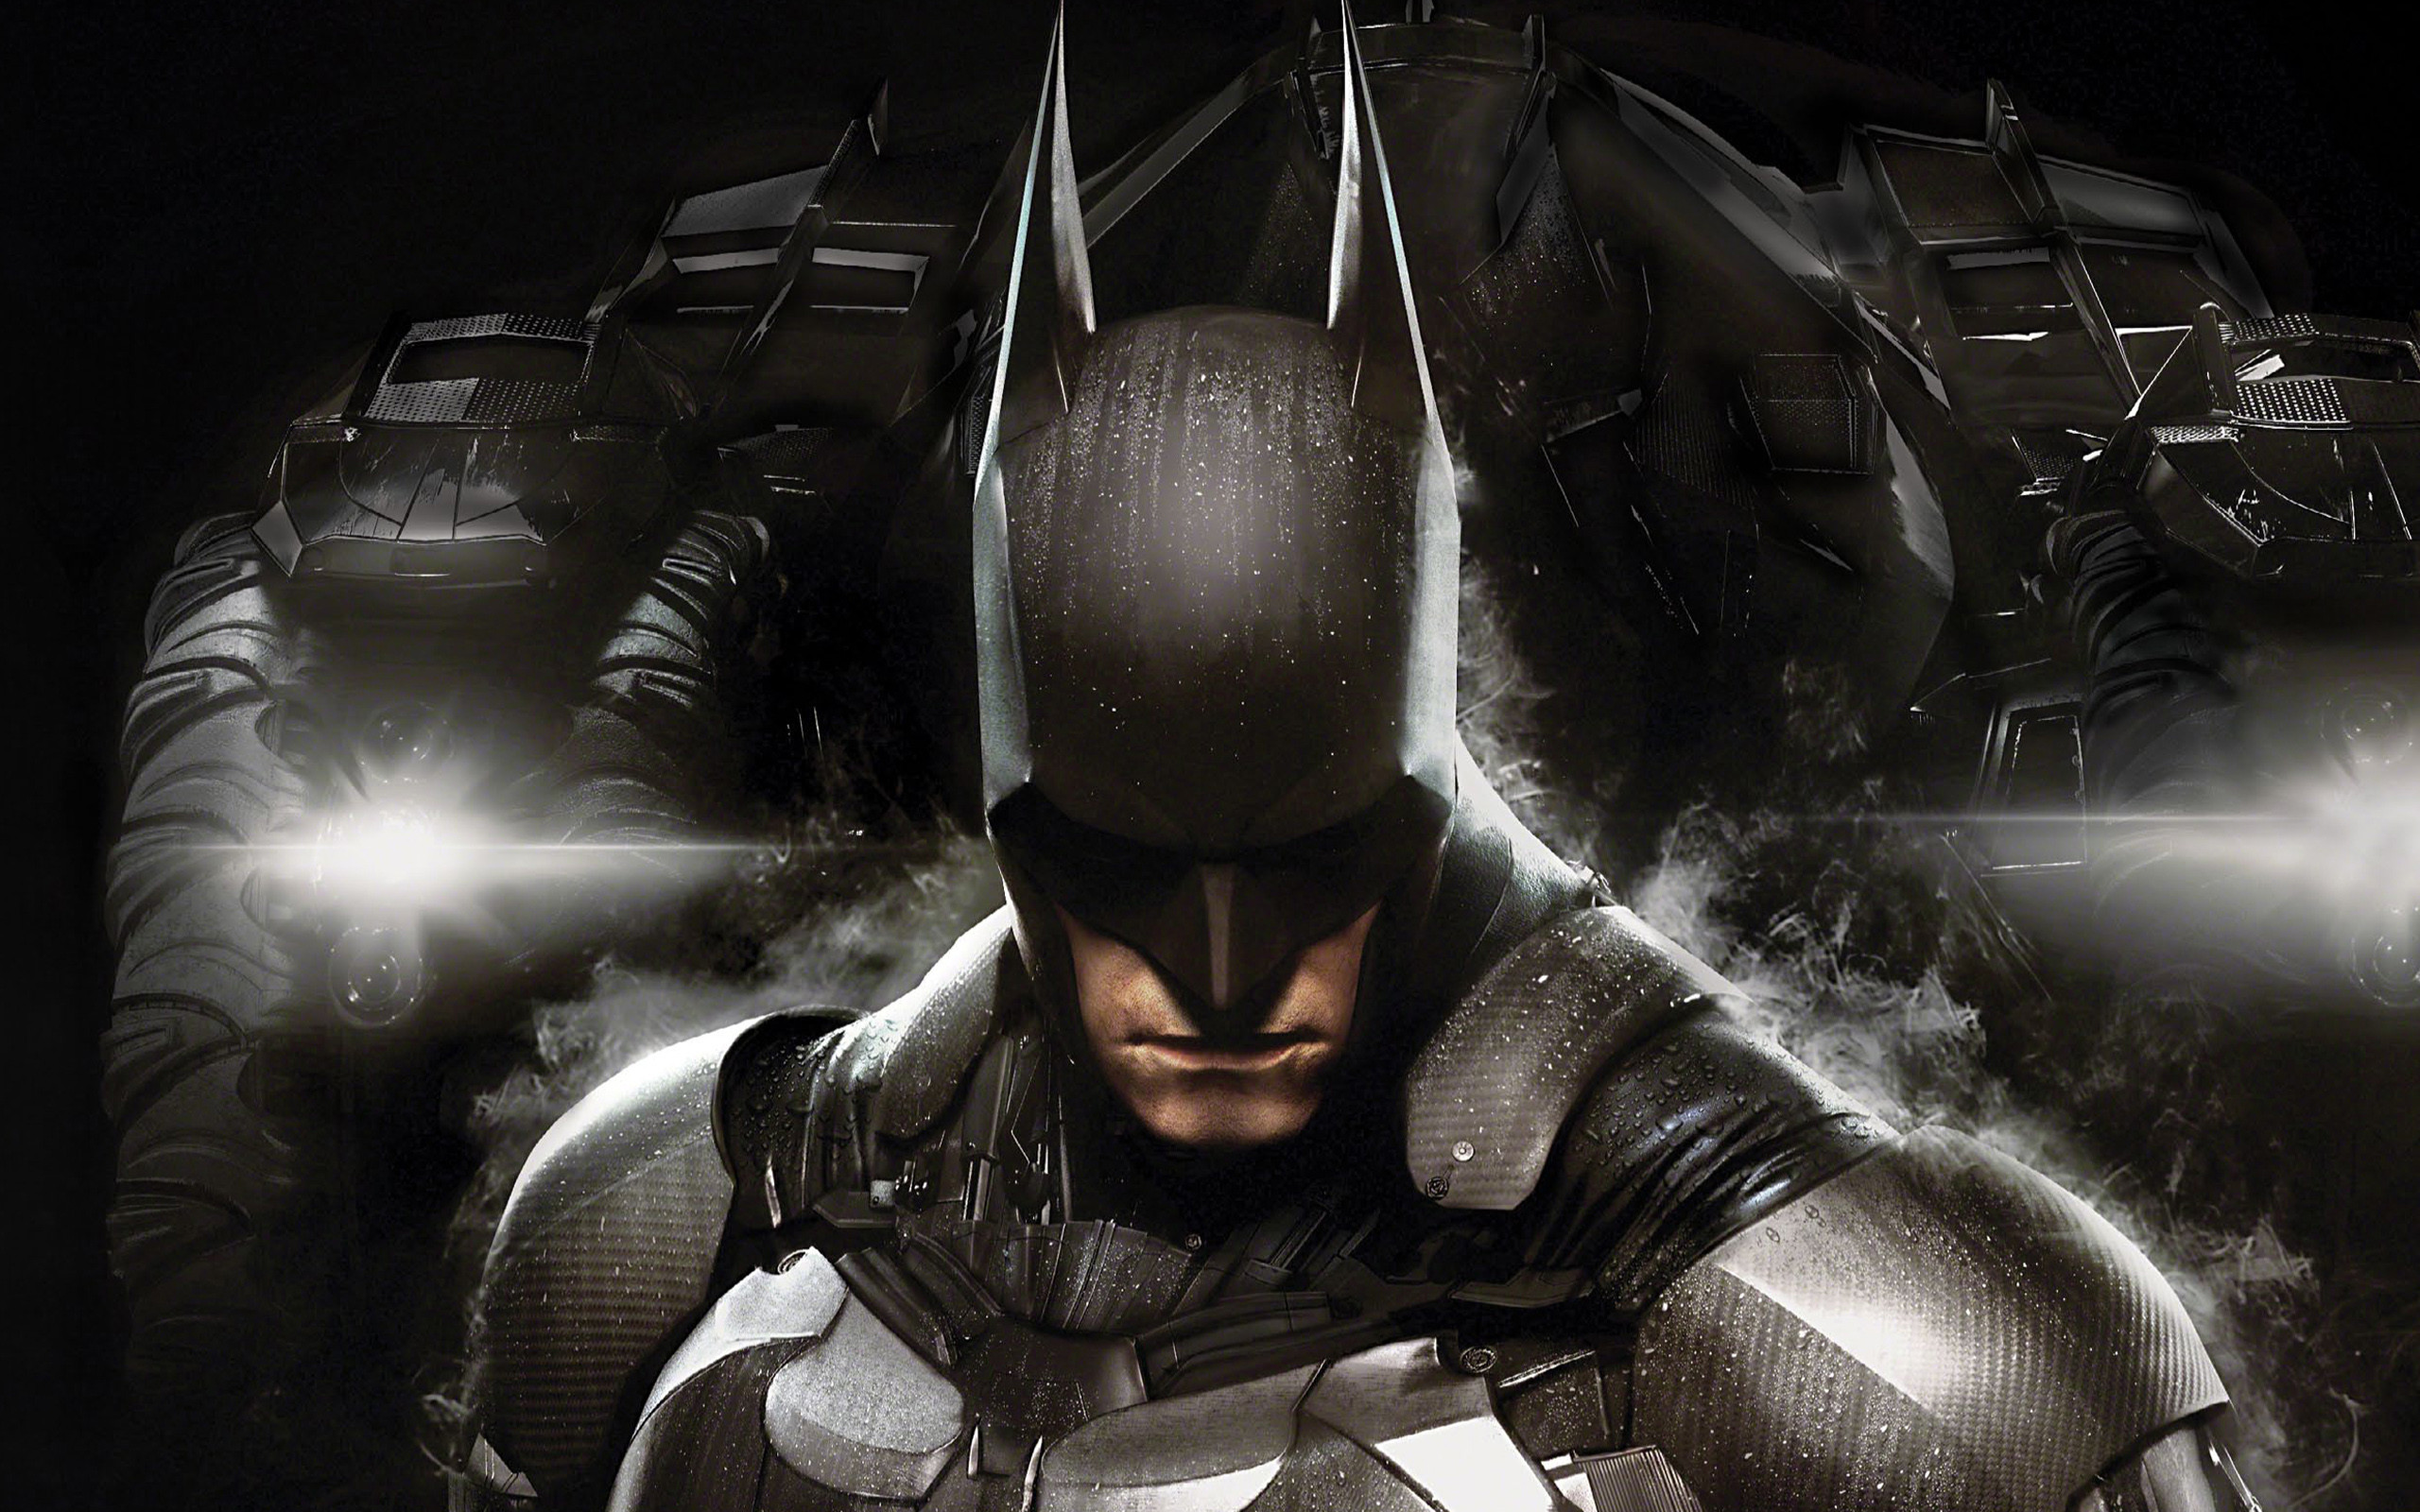 Res: 2560x1600, Batman Arkham Knight 1080p Image | Full HD Pictures | M.F. Backgrounds